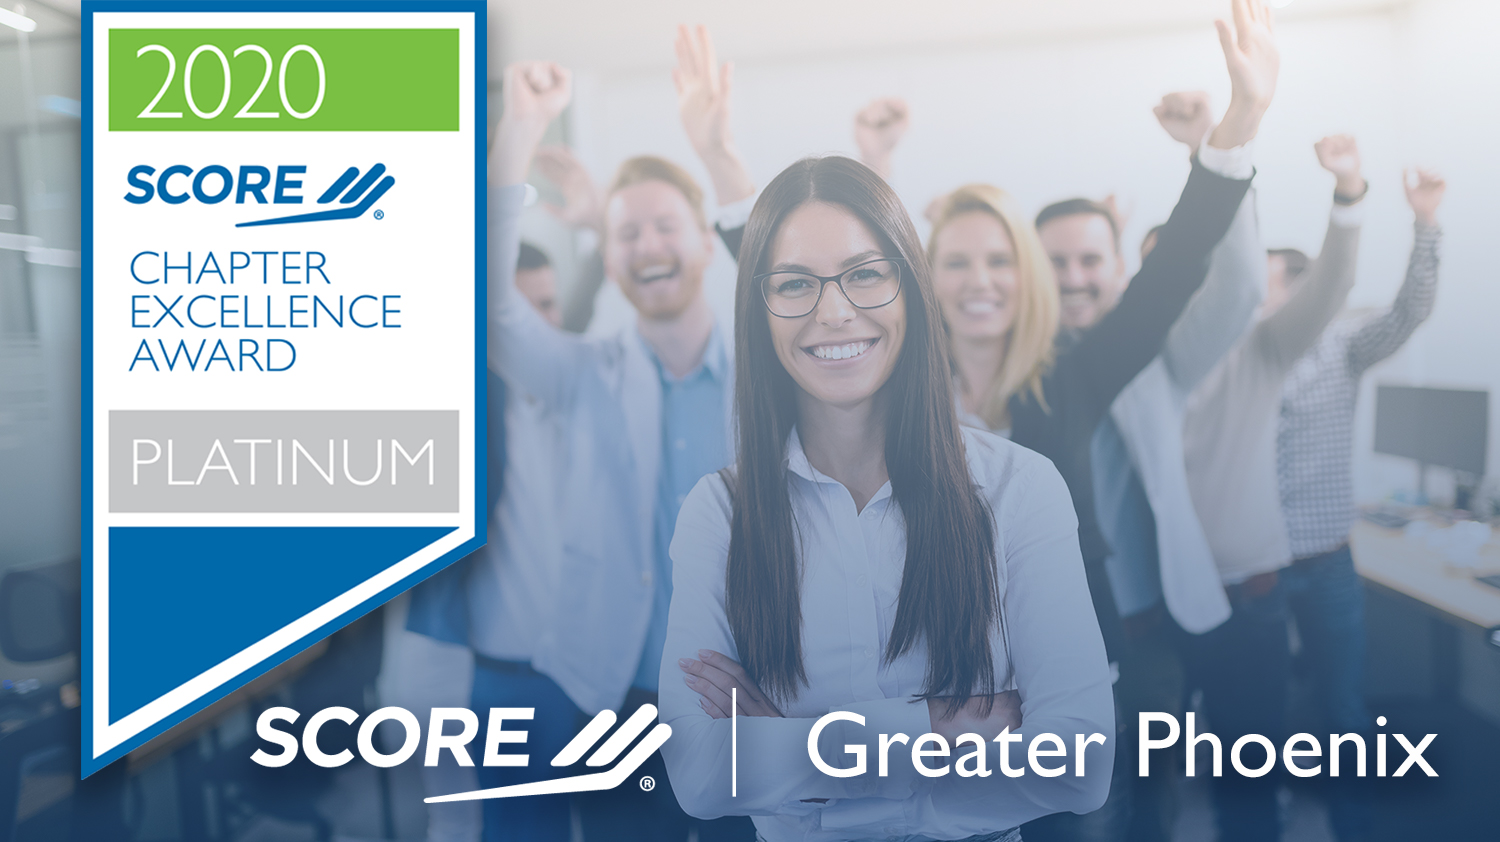 SCORE Greater Phoenix Platinum Chapter Excellence Award 2020